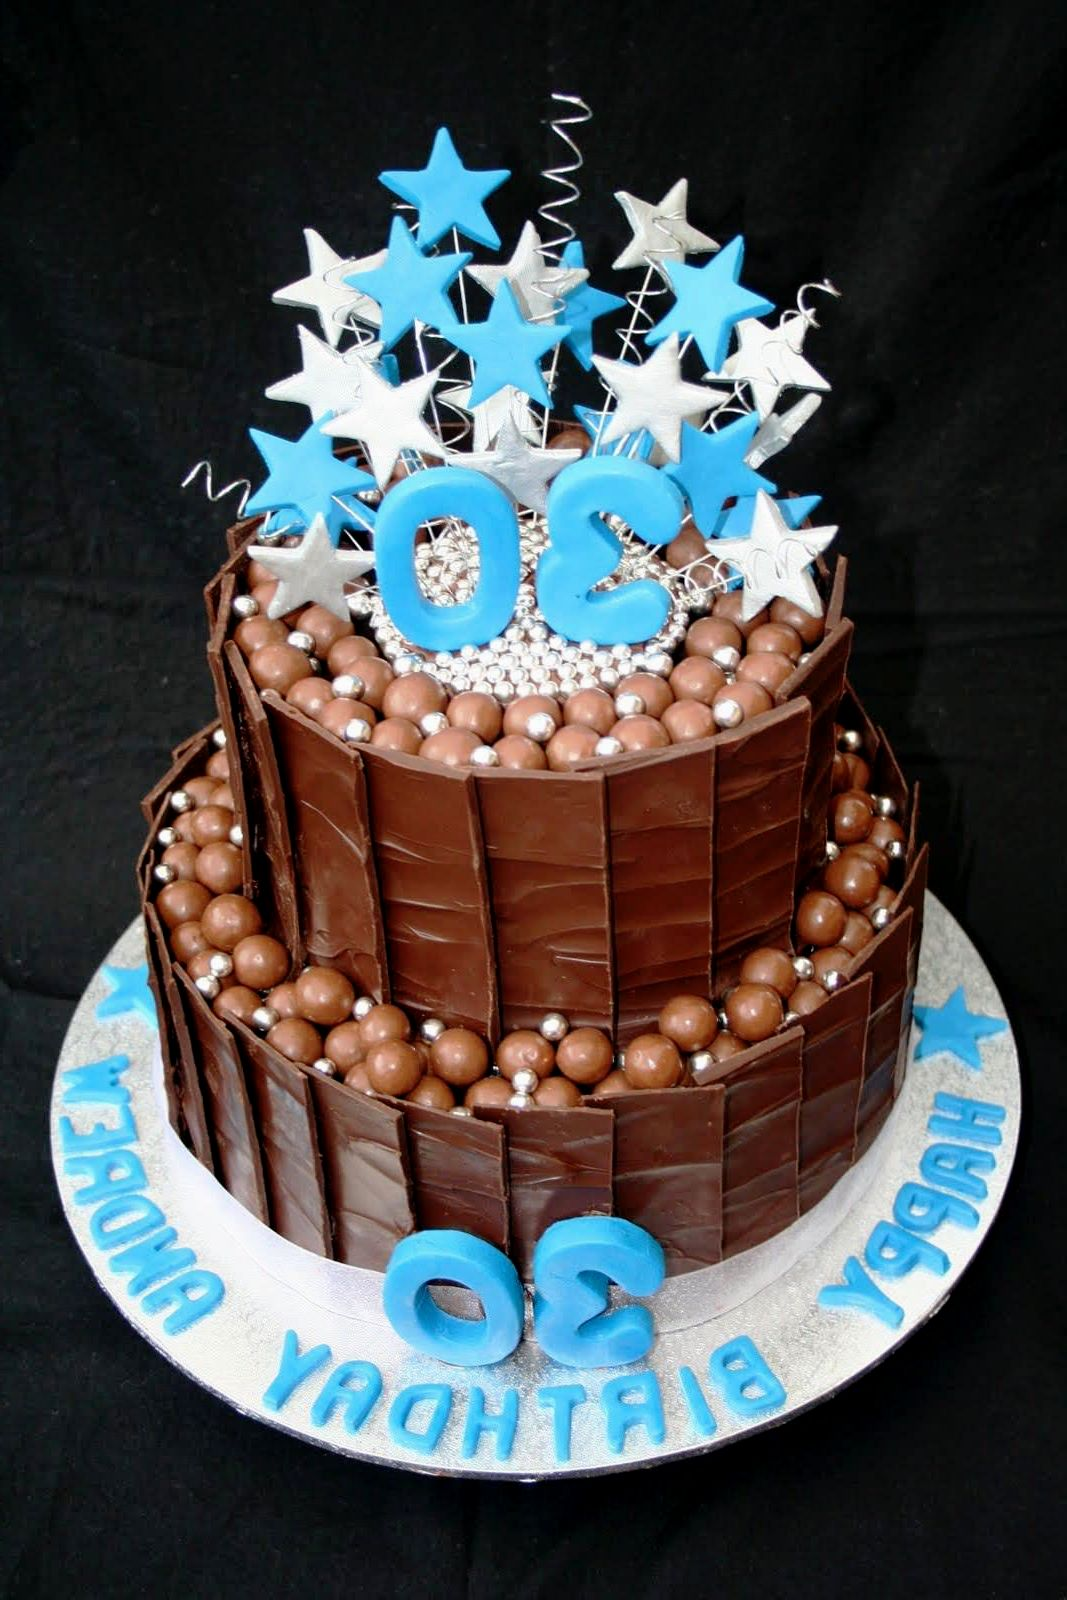 40 Year Old Male Birthday Cake Ideas Archidev 30 9 Cakes For Her Photo 30th